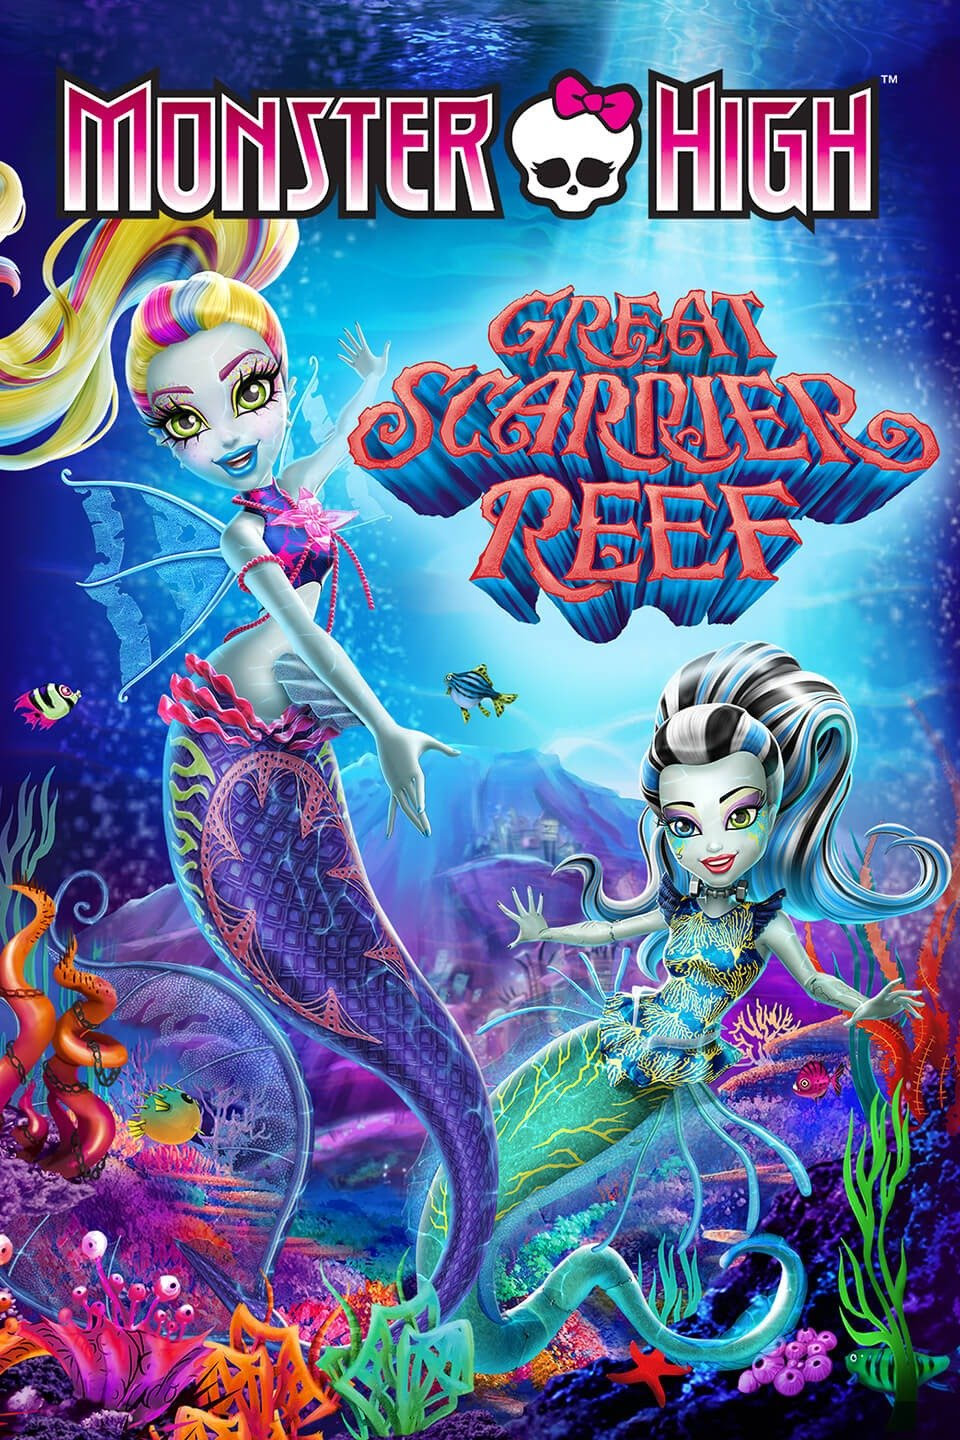 Great Scarrier Reef TV Special